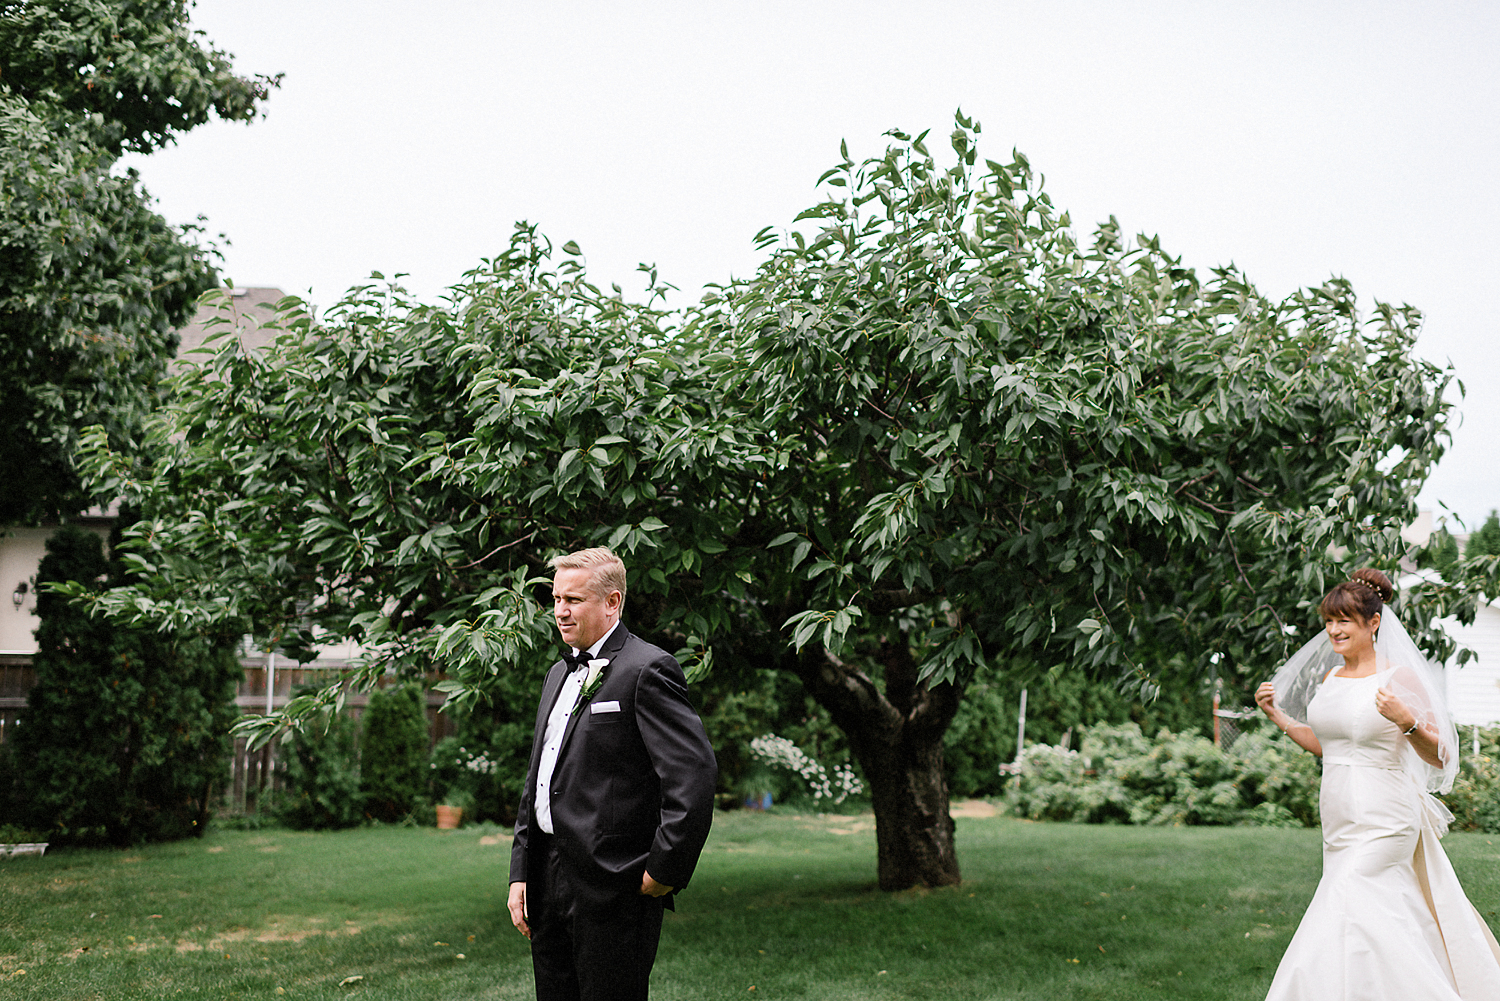 Best-Moody-Documentary-Wedding-Photographers-in-Toronto-Canada-Vintage-Photojournalistic-Wedding-photography-Epic-Moody-Cinematic-First-Look-in-Brides-Parents-backyard-by-cherry-tree.jpg